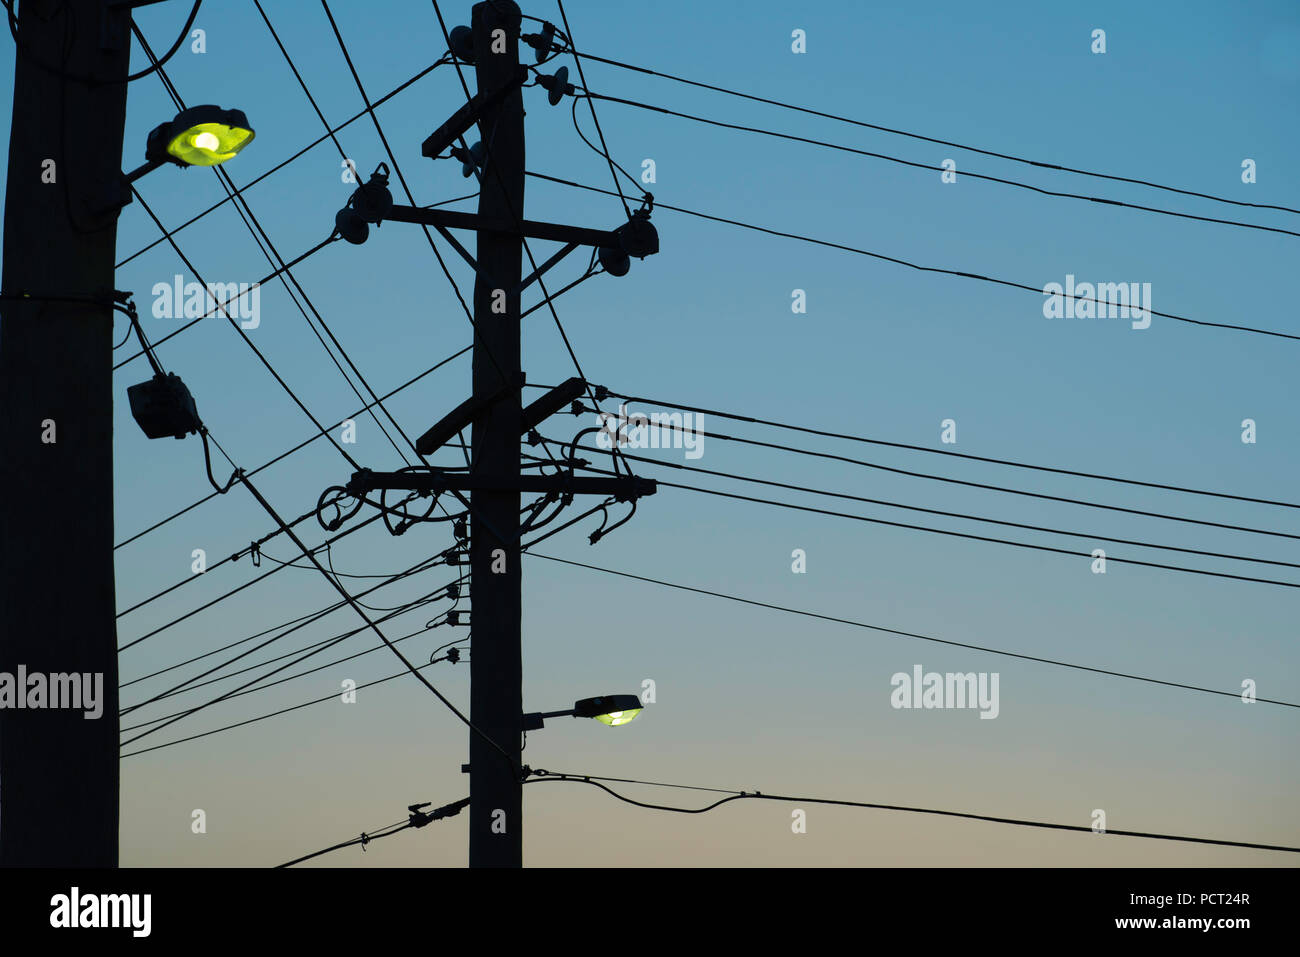 Street Pole Lights Electric Wiring - Trusted Schematic Diagrams •